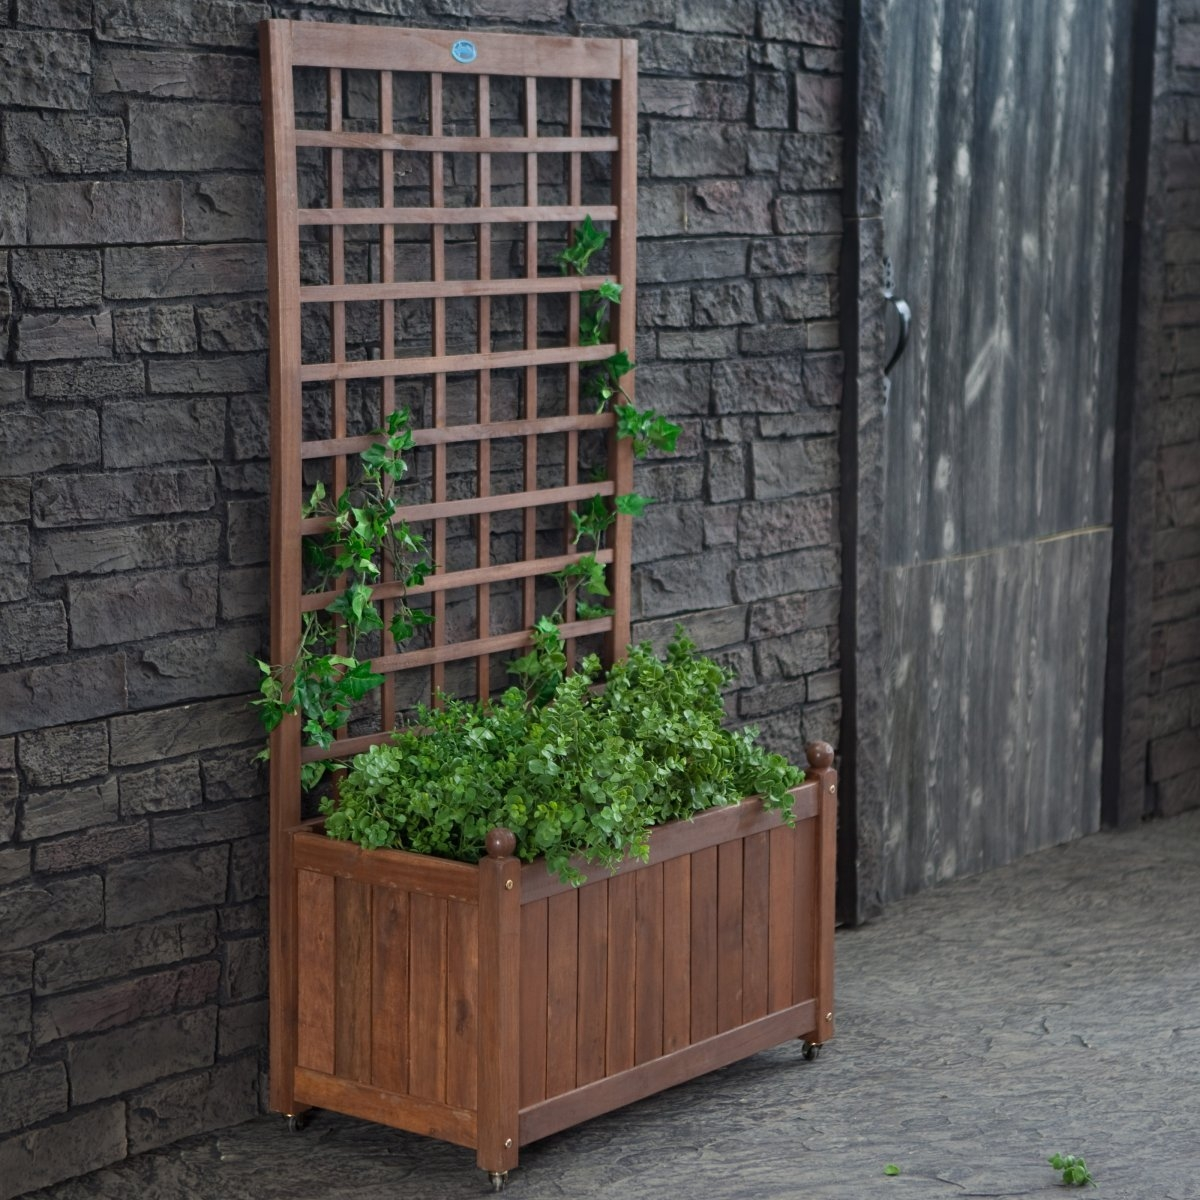 Wood Planter Box on Wheels with Grid-style Trellis,  JWPBT1198 :  A handsome way to dress your exterior wall in nature's finery, this Wood Planter Box on Wheels with Grid-style Trellis has a classic design you'll love. It's made of tropical Balau wood that is naturally dense and weather-resistant. The grid-style trellis is the perfect backdrop for climbing vines and flowers and the planter is deep enough to happily grow any number of your favorites. You'll love the natural way it looks and this trellis is on wheels, which makes it a clever and natural screen between you and the neighbors as well. Comes with instructions and hardware.